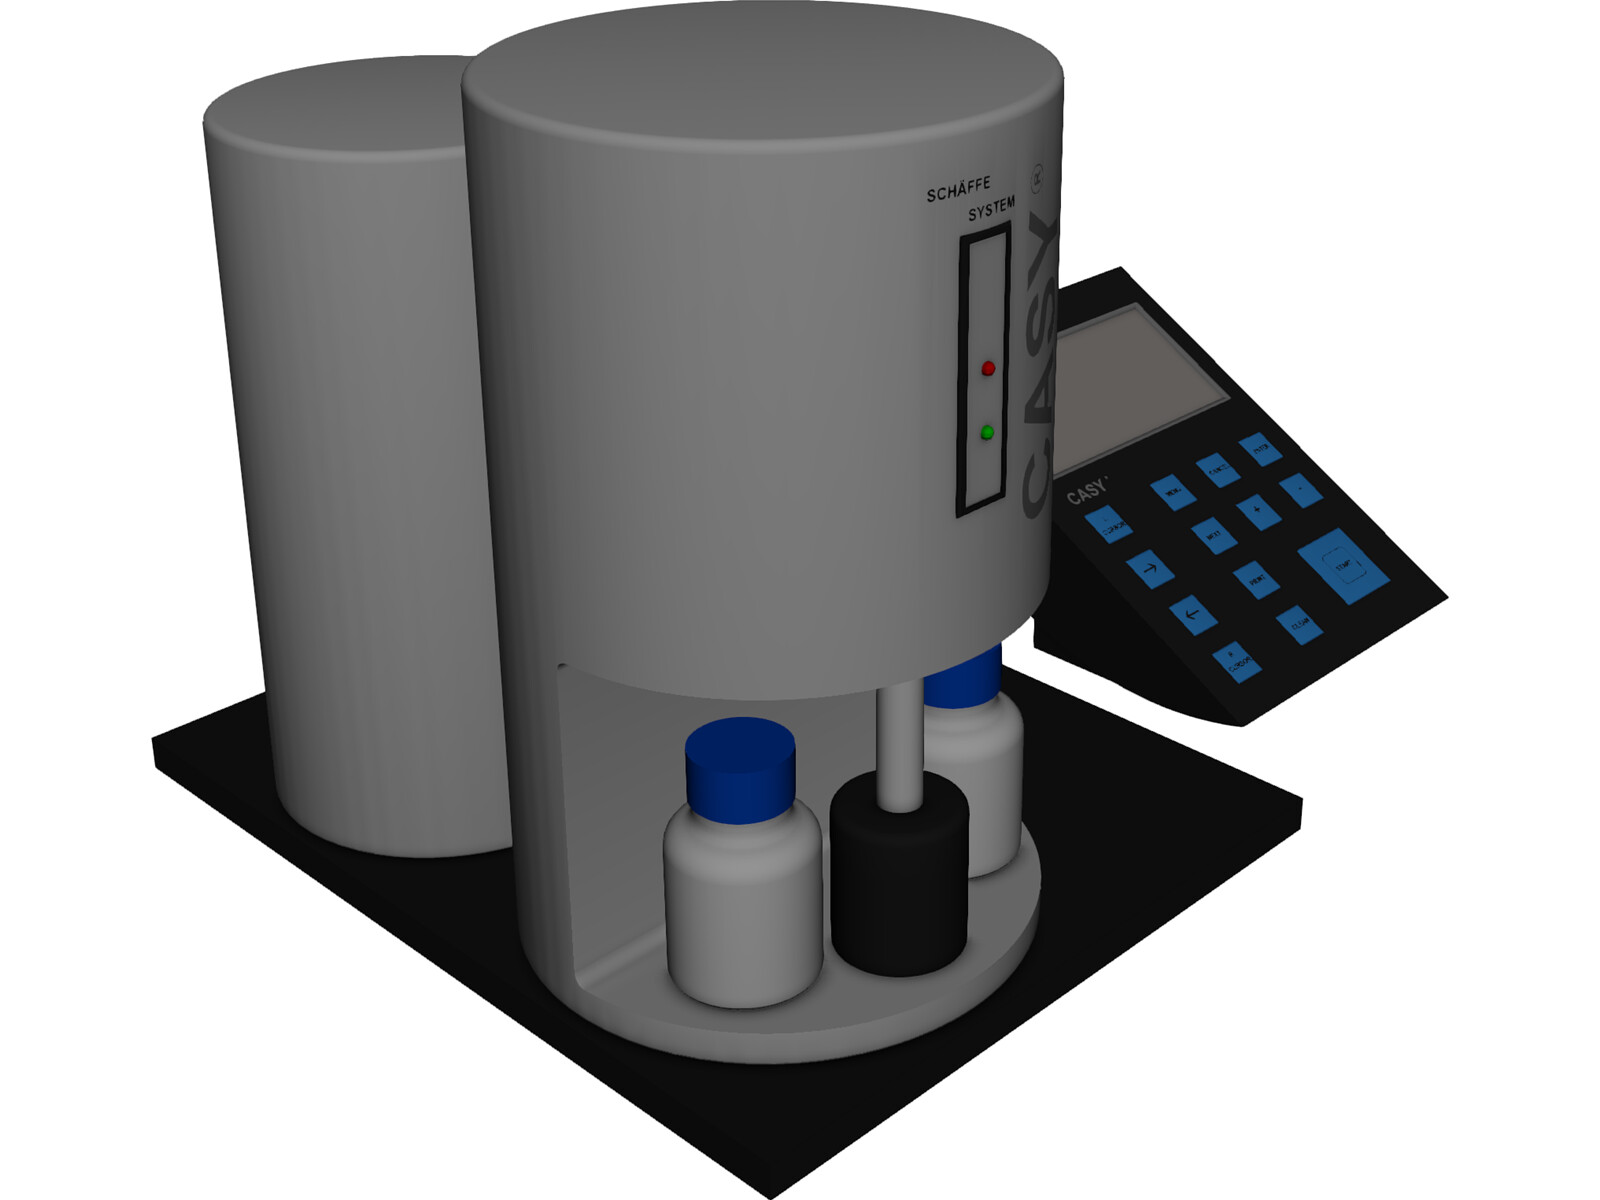 Casy Cell Counter 3d Cad Model 3d Cad Browser